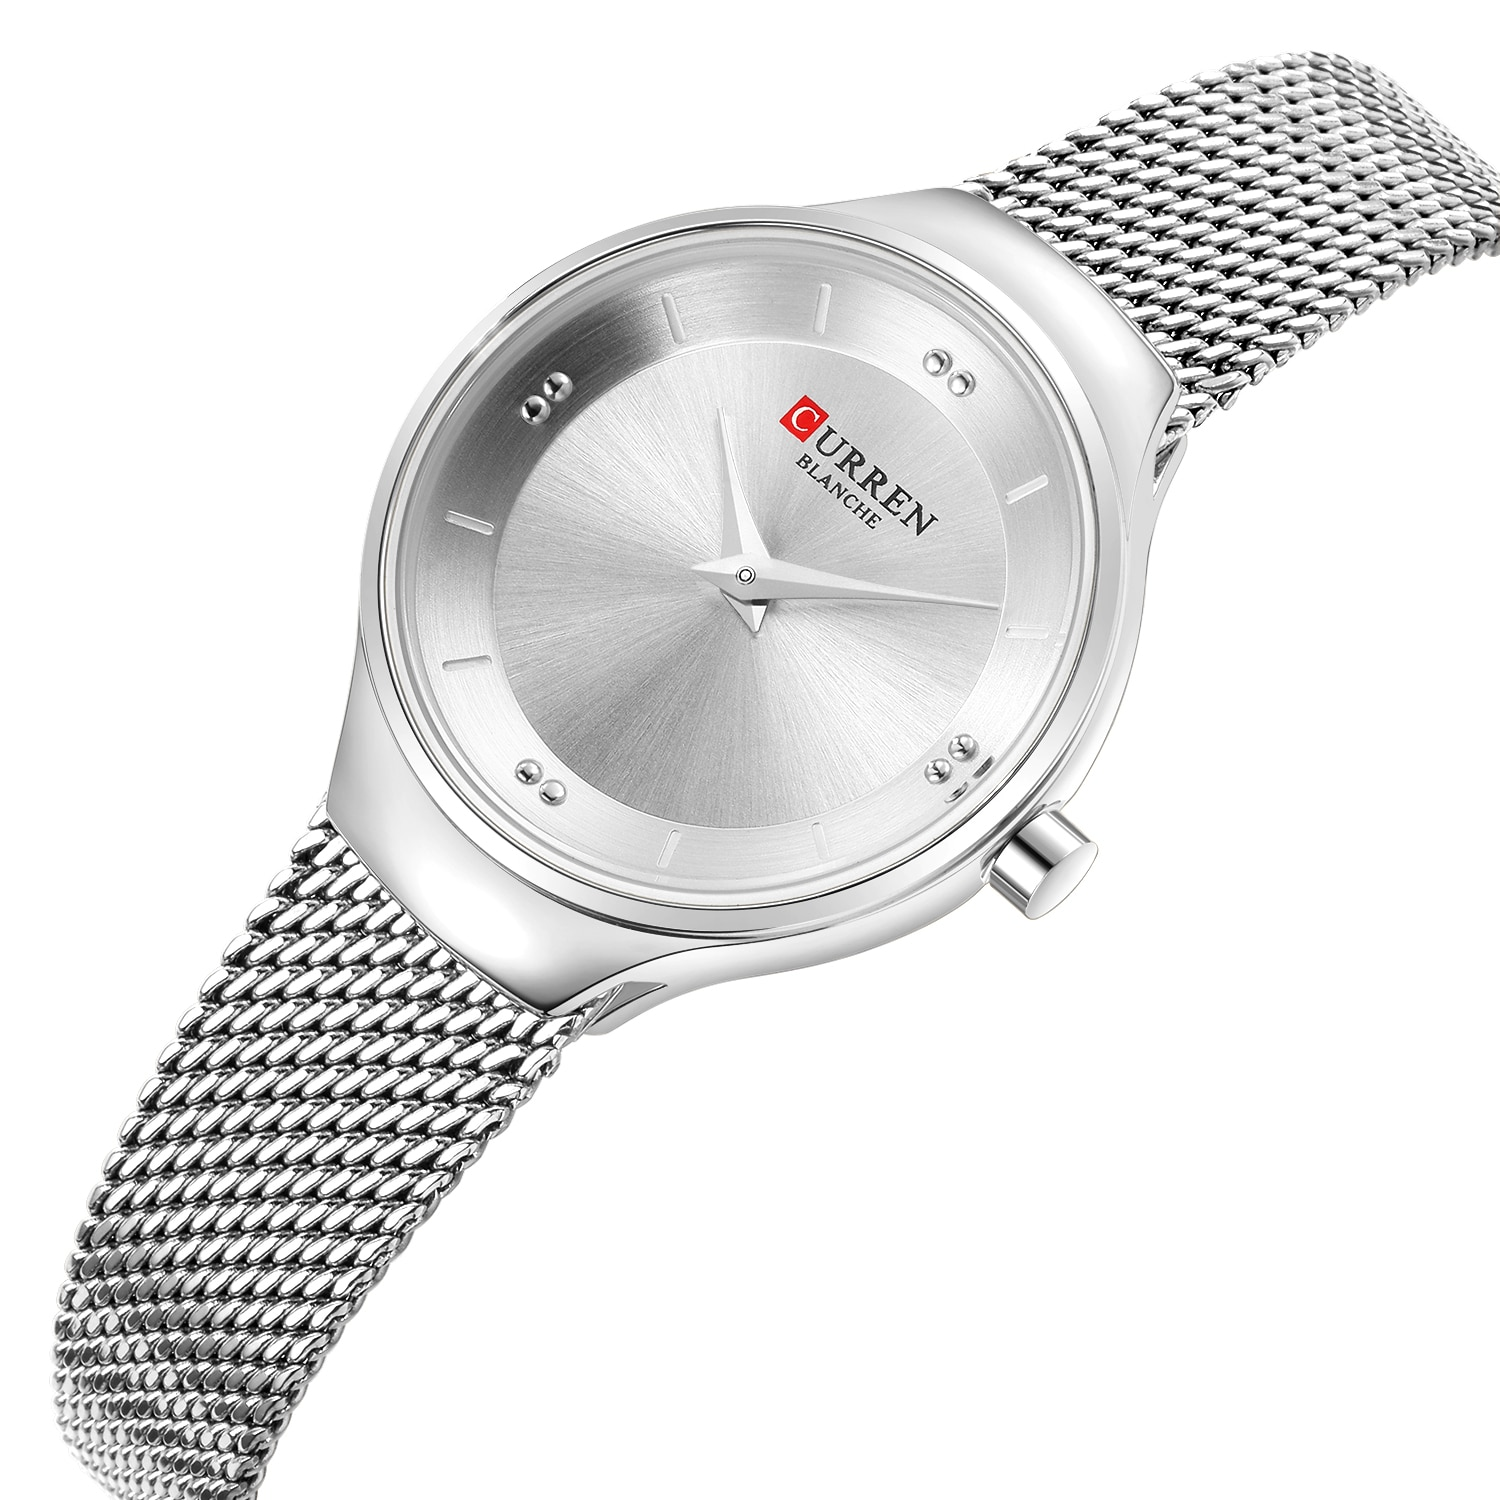 CURREN Female Clock Modern Stylish Quartz Watch Silver Stainless Steel Casual Mesh Wrist Watch Minimalist Style Horloges Vrouwen enlarge